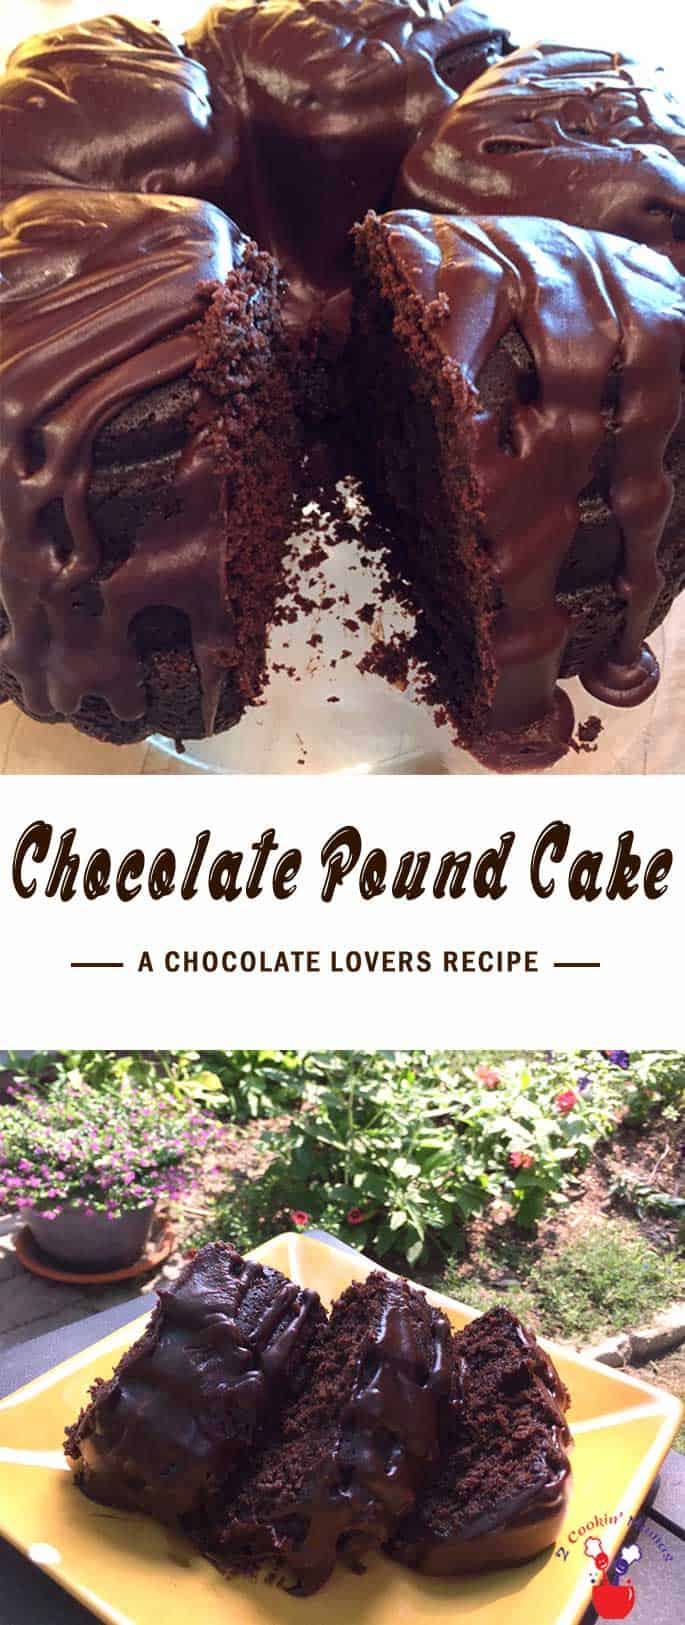 Calling all chocolate lovers! An easy to make, deliciously moist chocolate pound cake topped with even more deep rich chocolate! #chocolatepoundcake #poundcake #chocolate #dessert